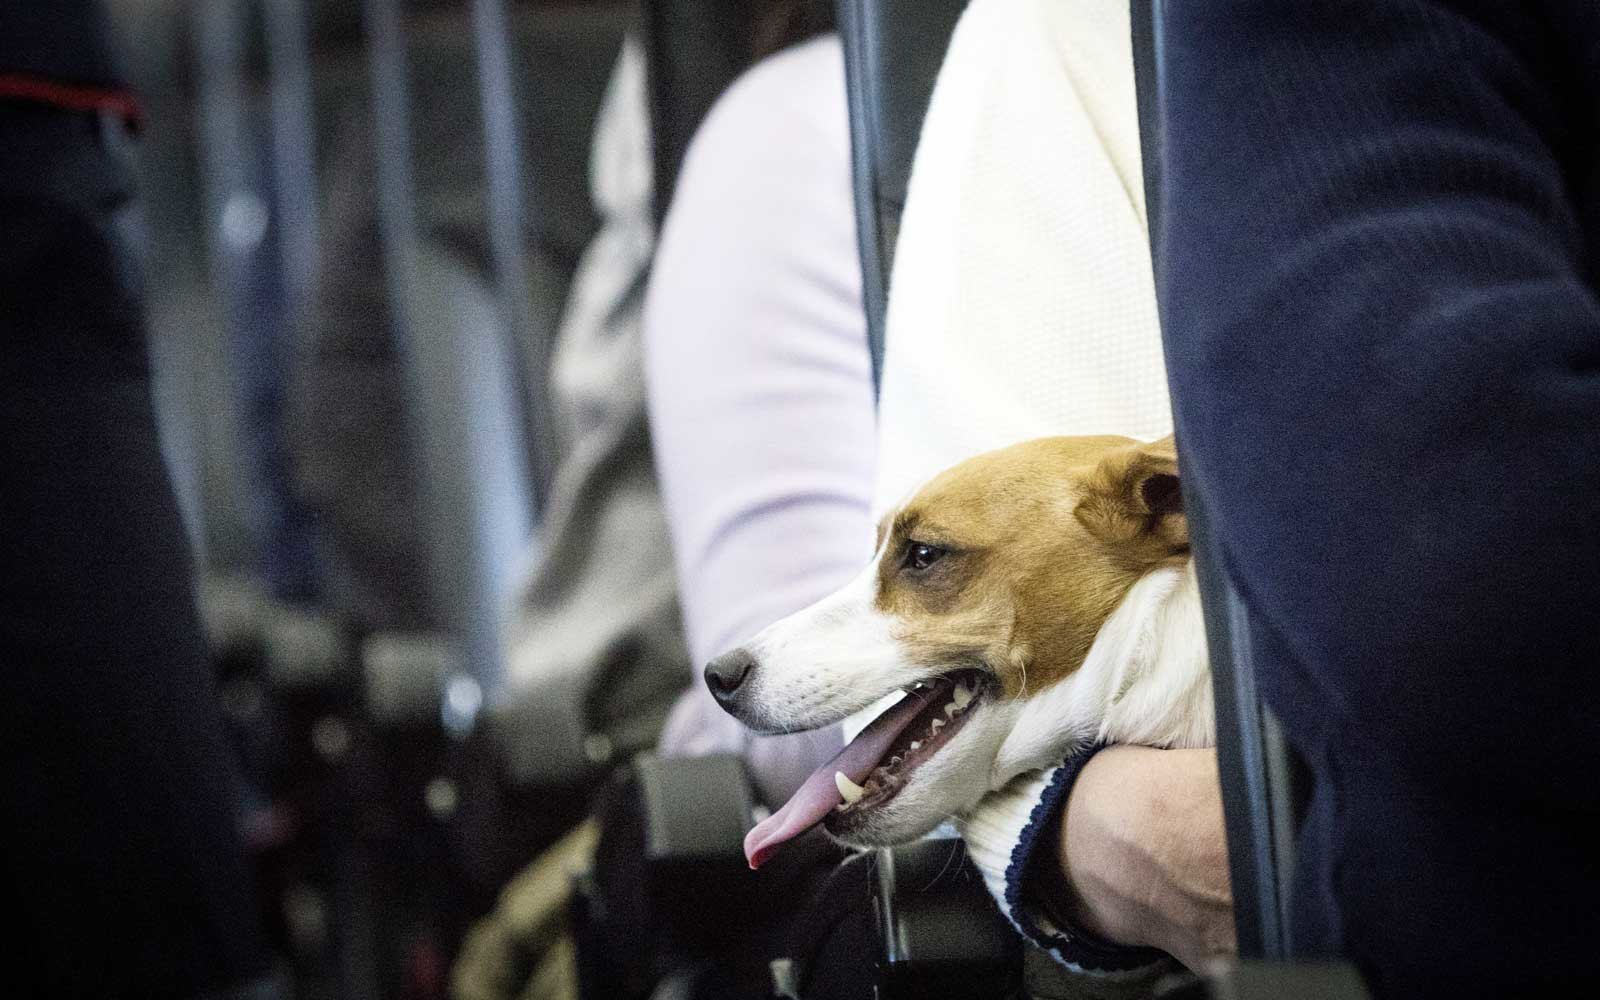 Dogs and their owners allowed to sit together on flight in Japan